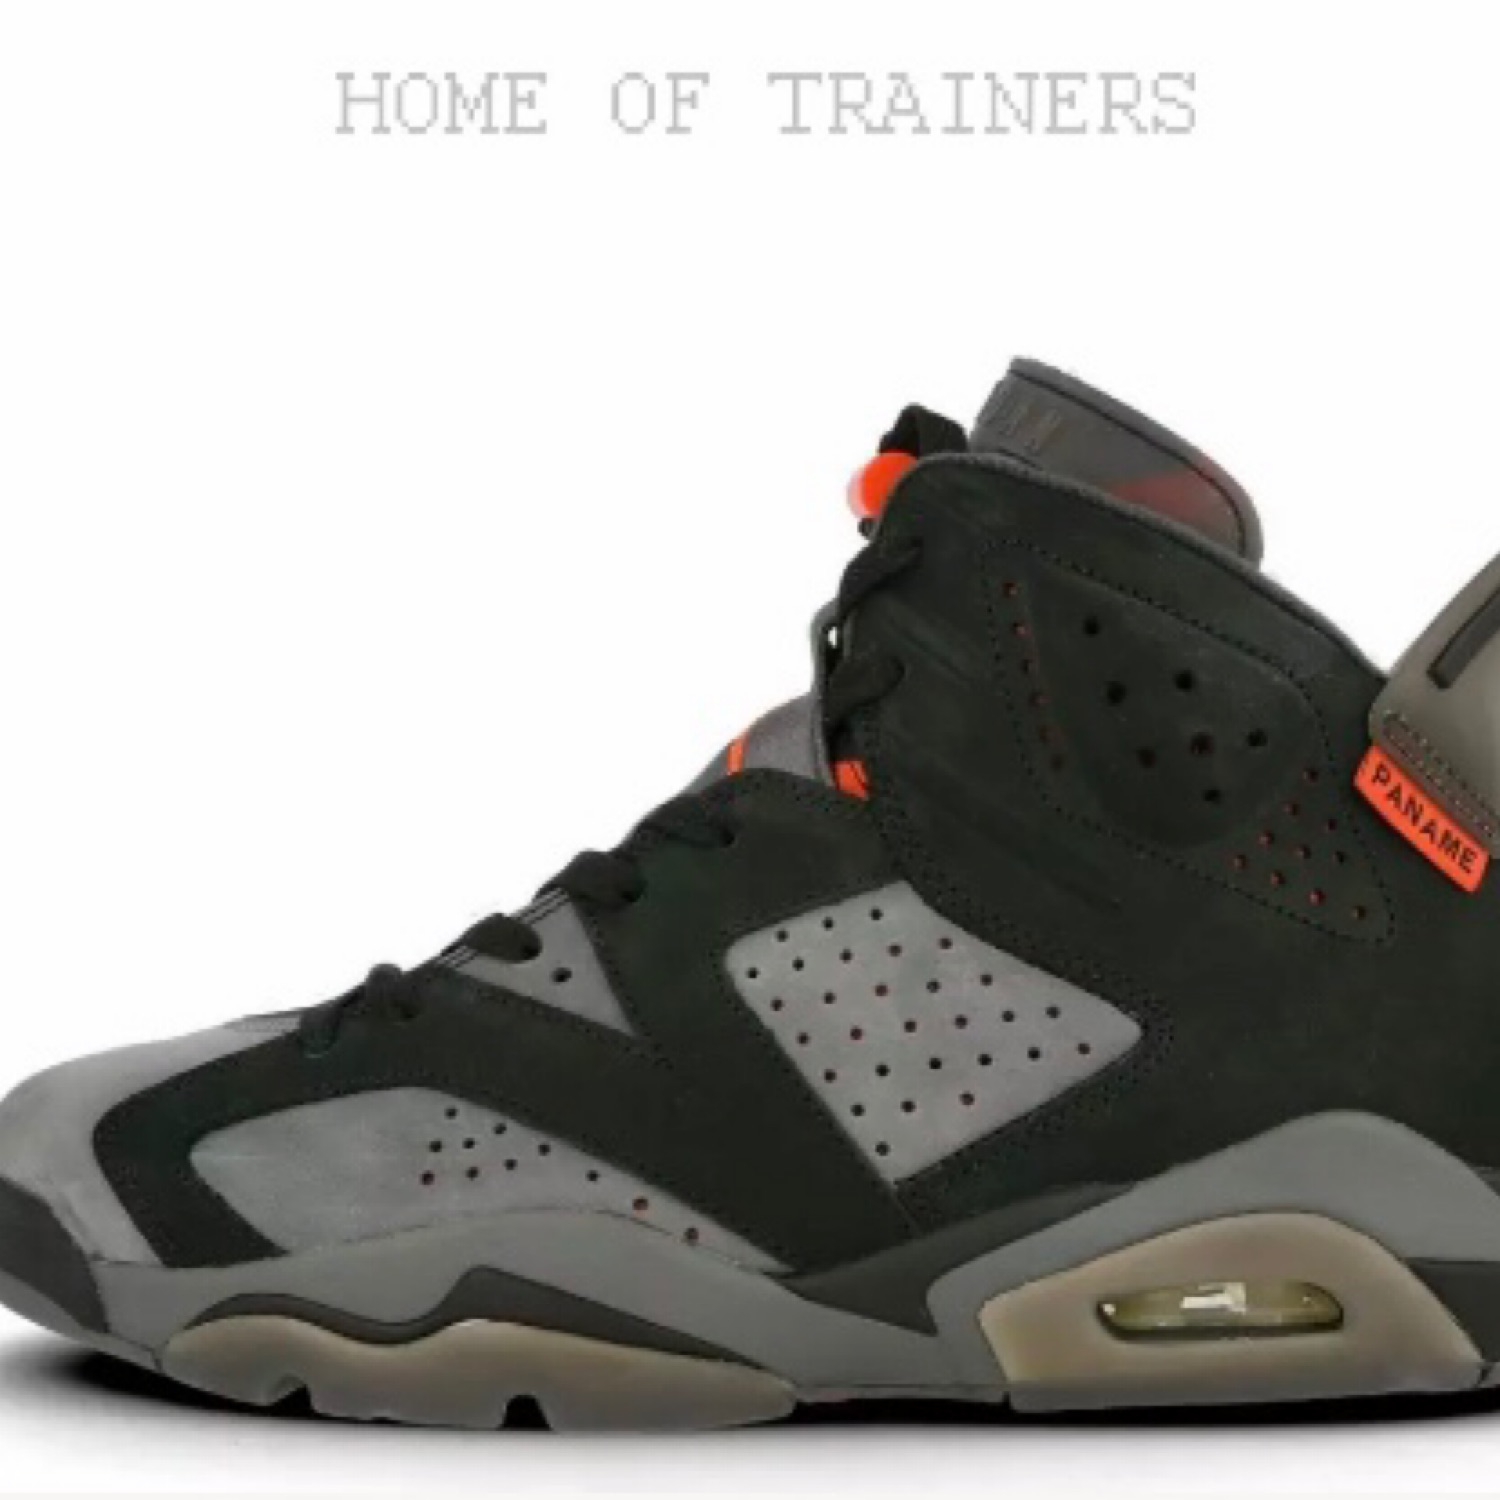 new product 2461b f2815 Nike Air Jordan 6 Psg Infrared 23